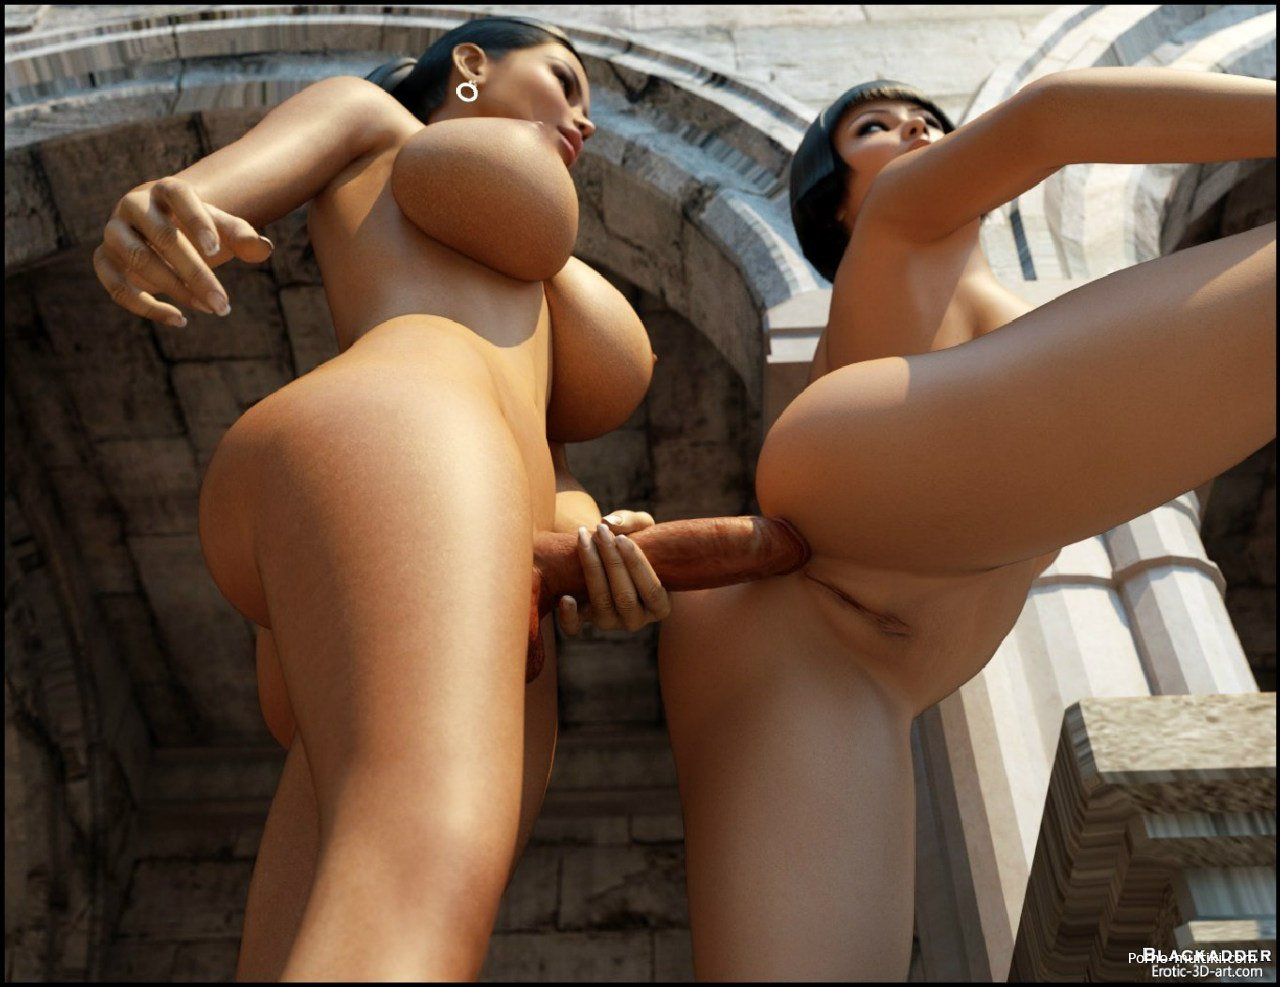 Fotos porno heintai hq gratis 3d do  sexy video